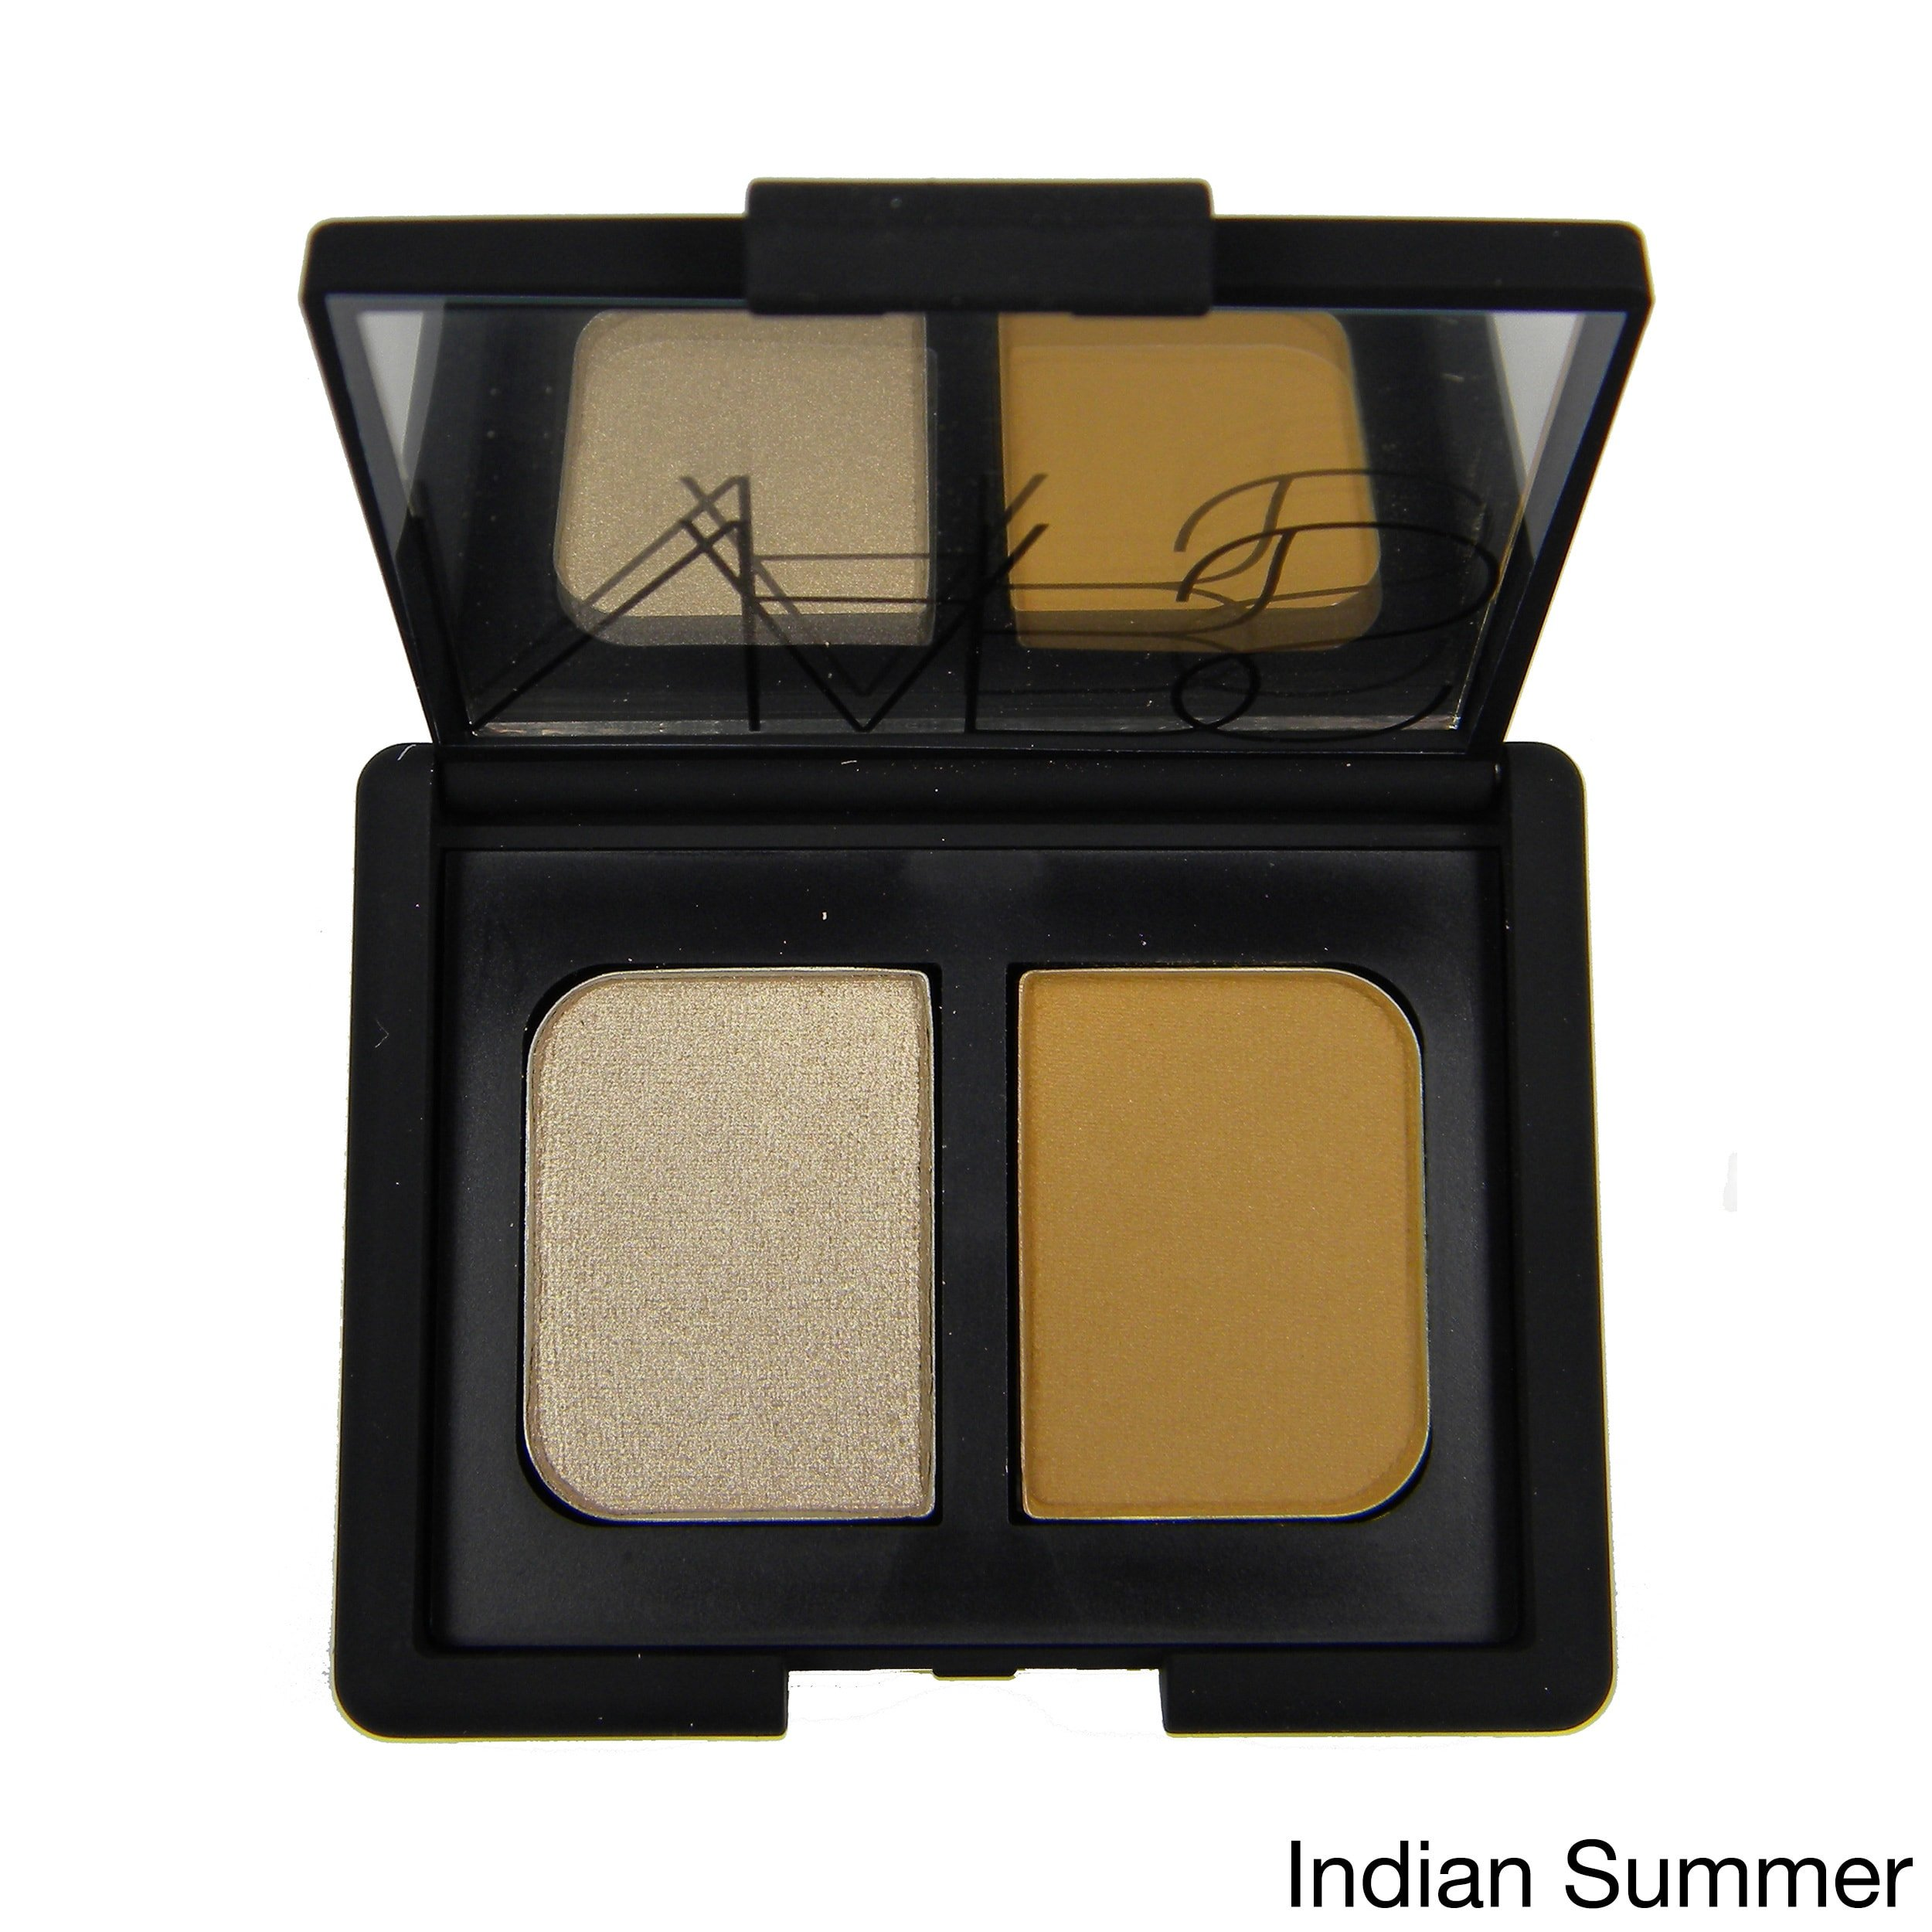 NARS Women's Duo Eyeshadow, Indian Summer, 0.14oz